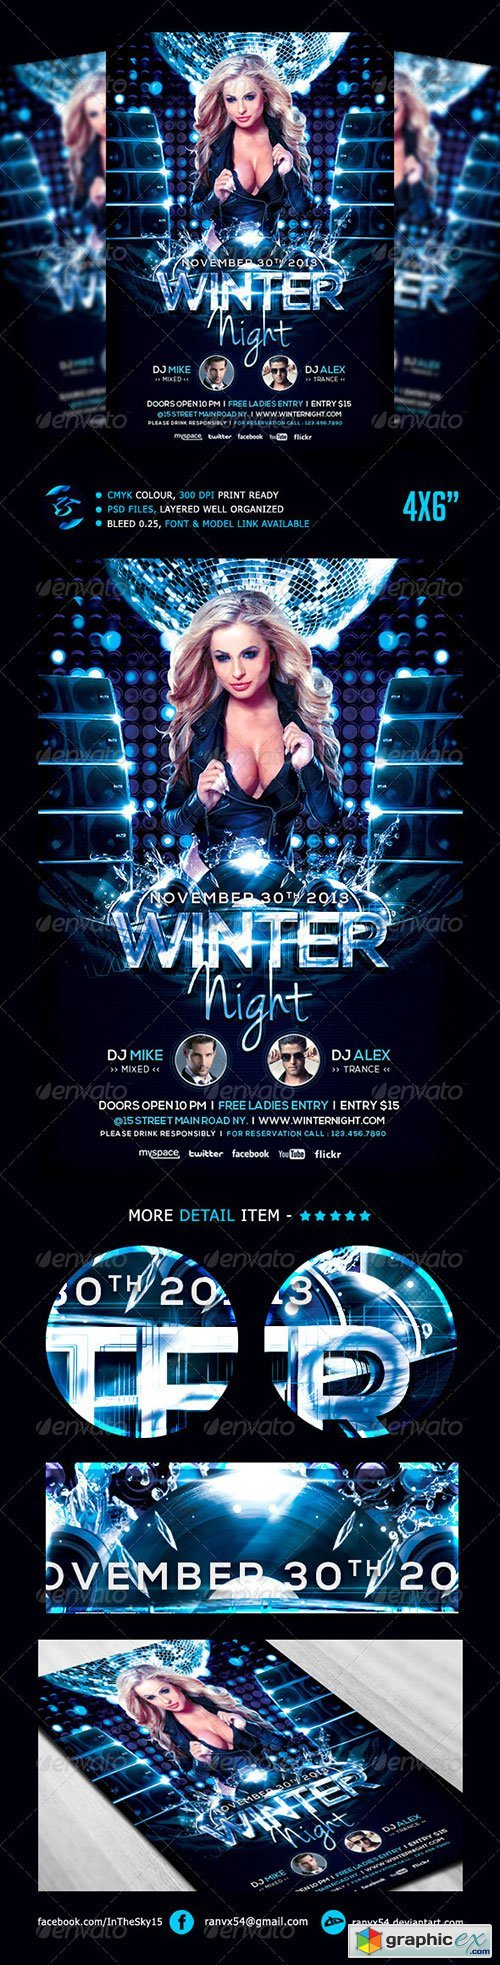 Winter Night Flyer Template 5478697 » Free Download Vector